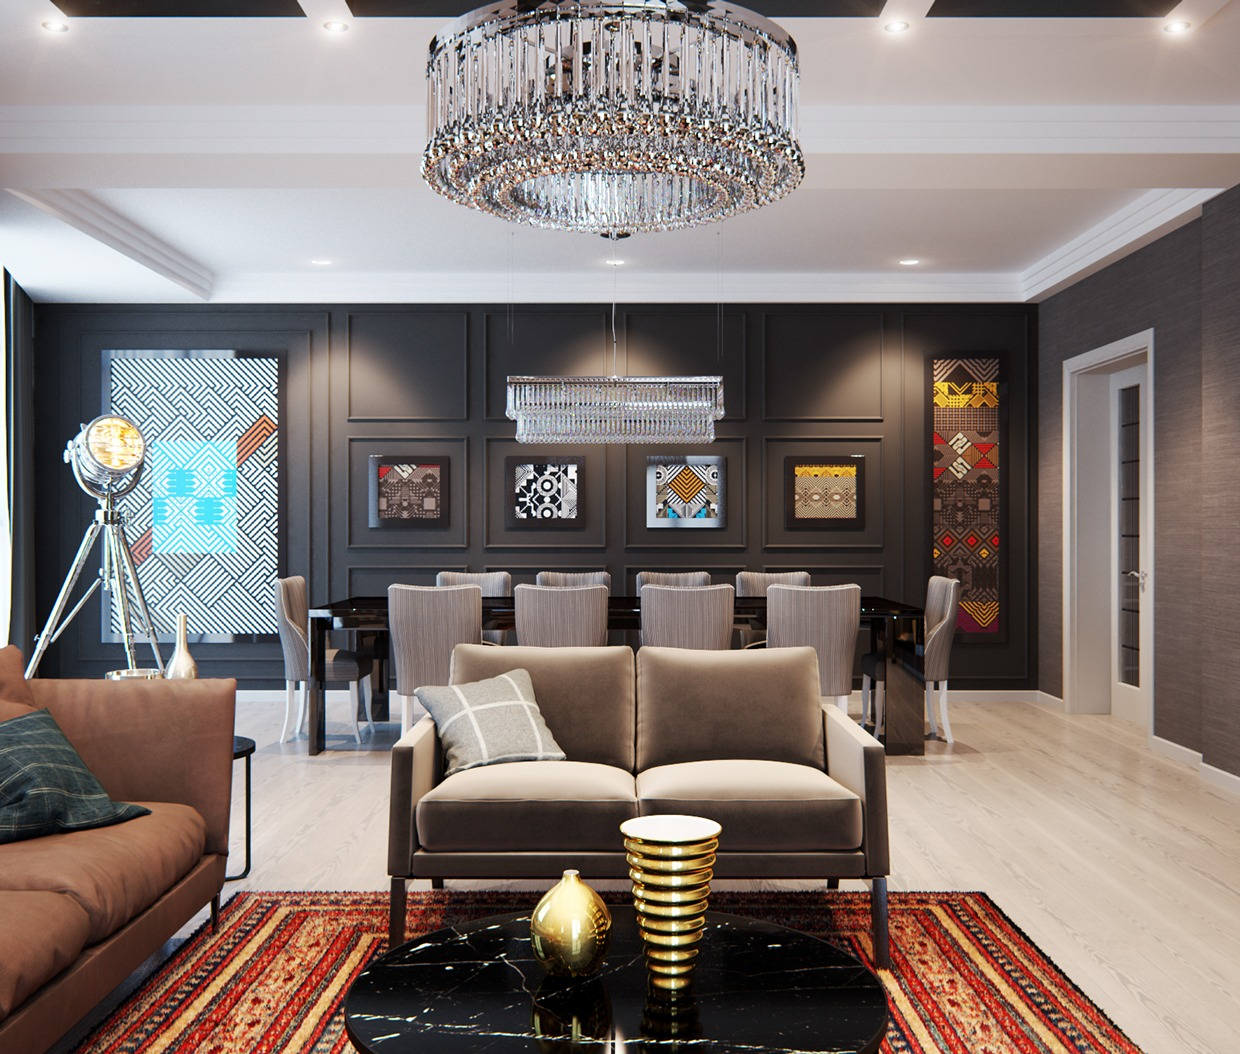 Home Interior Design: A Modern Interior Home Design Which Combining A Classic Decor That Would Bring Out A Trendy